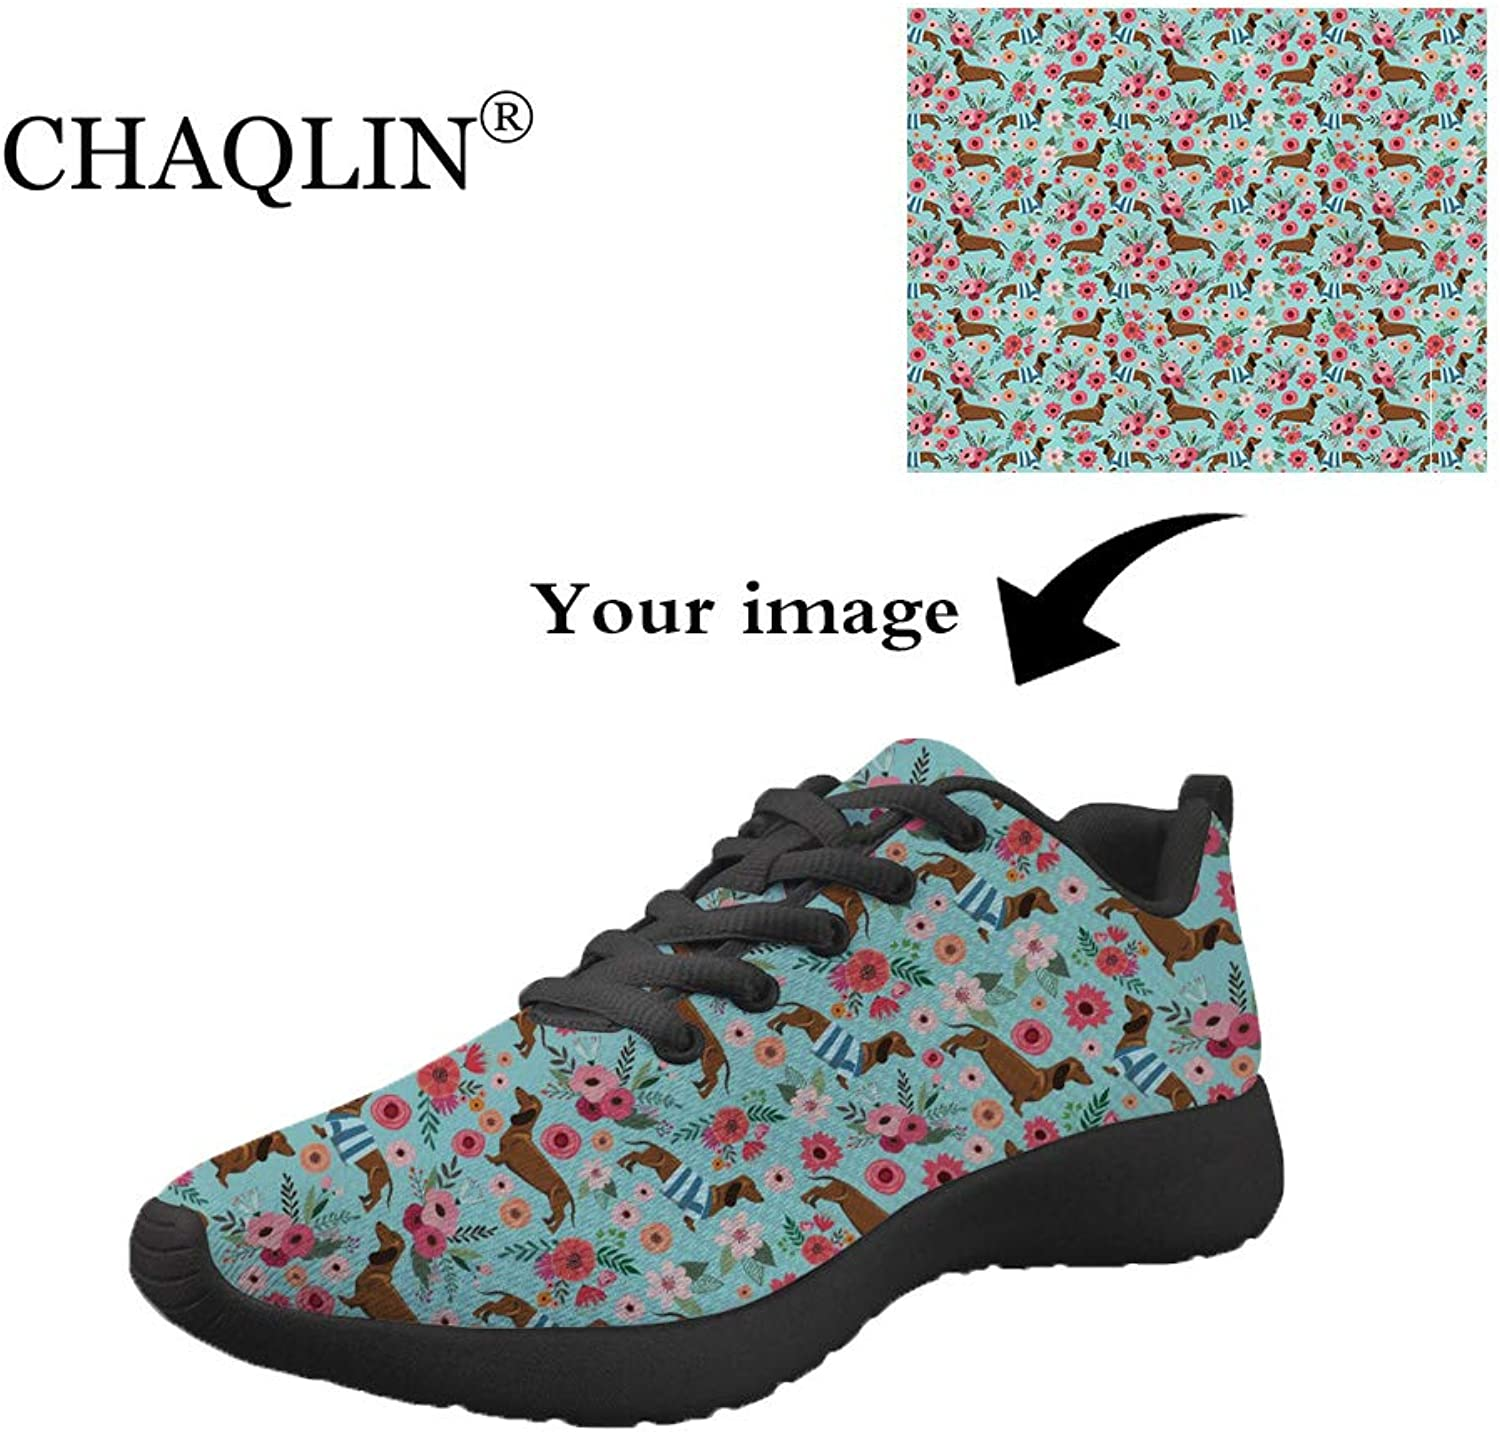 Chaqlin Trainers Women Road Running shoes Outdoor Casual Sports Walking Comfort Low Top Sneakers Animal Horse Printed Travel Fashion shoes Mesh Breathable